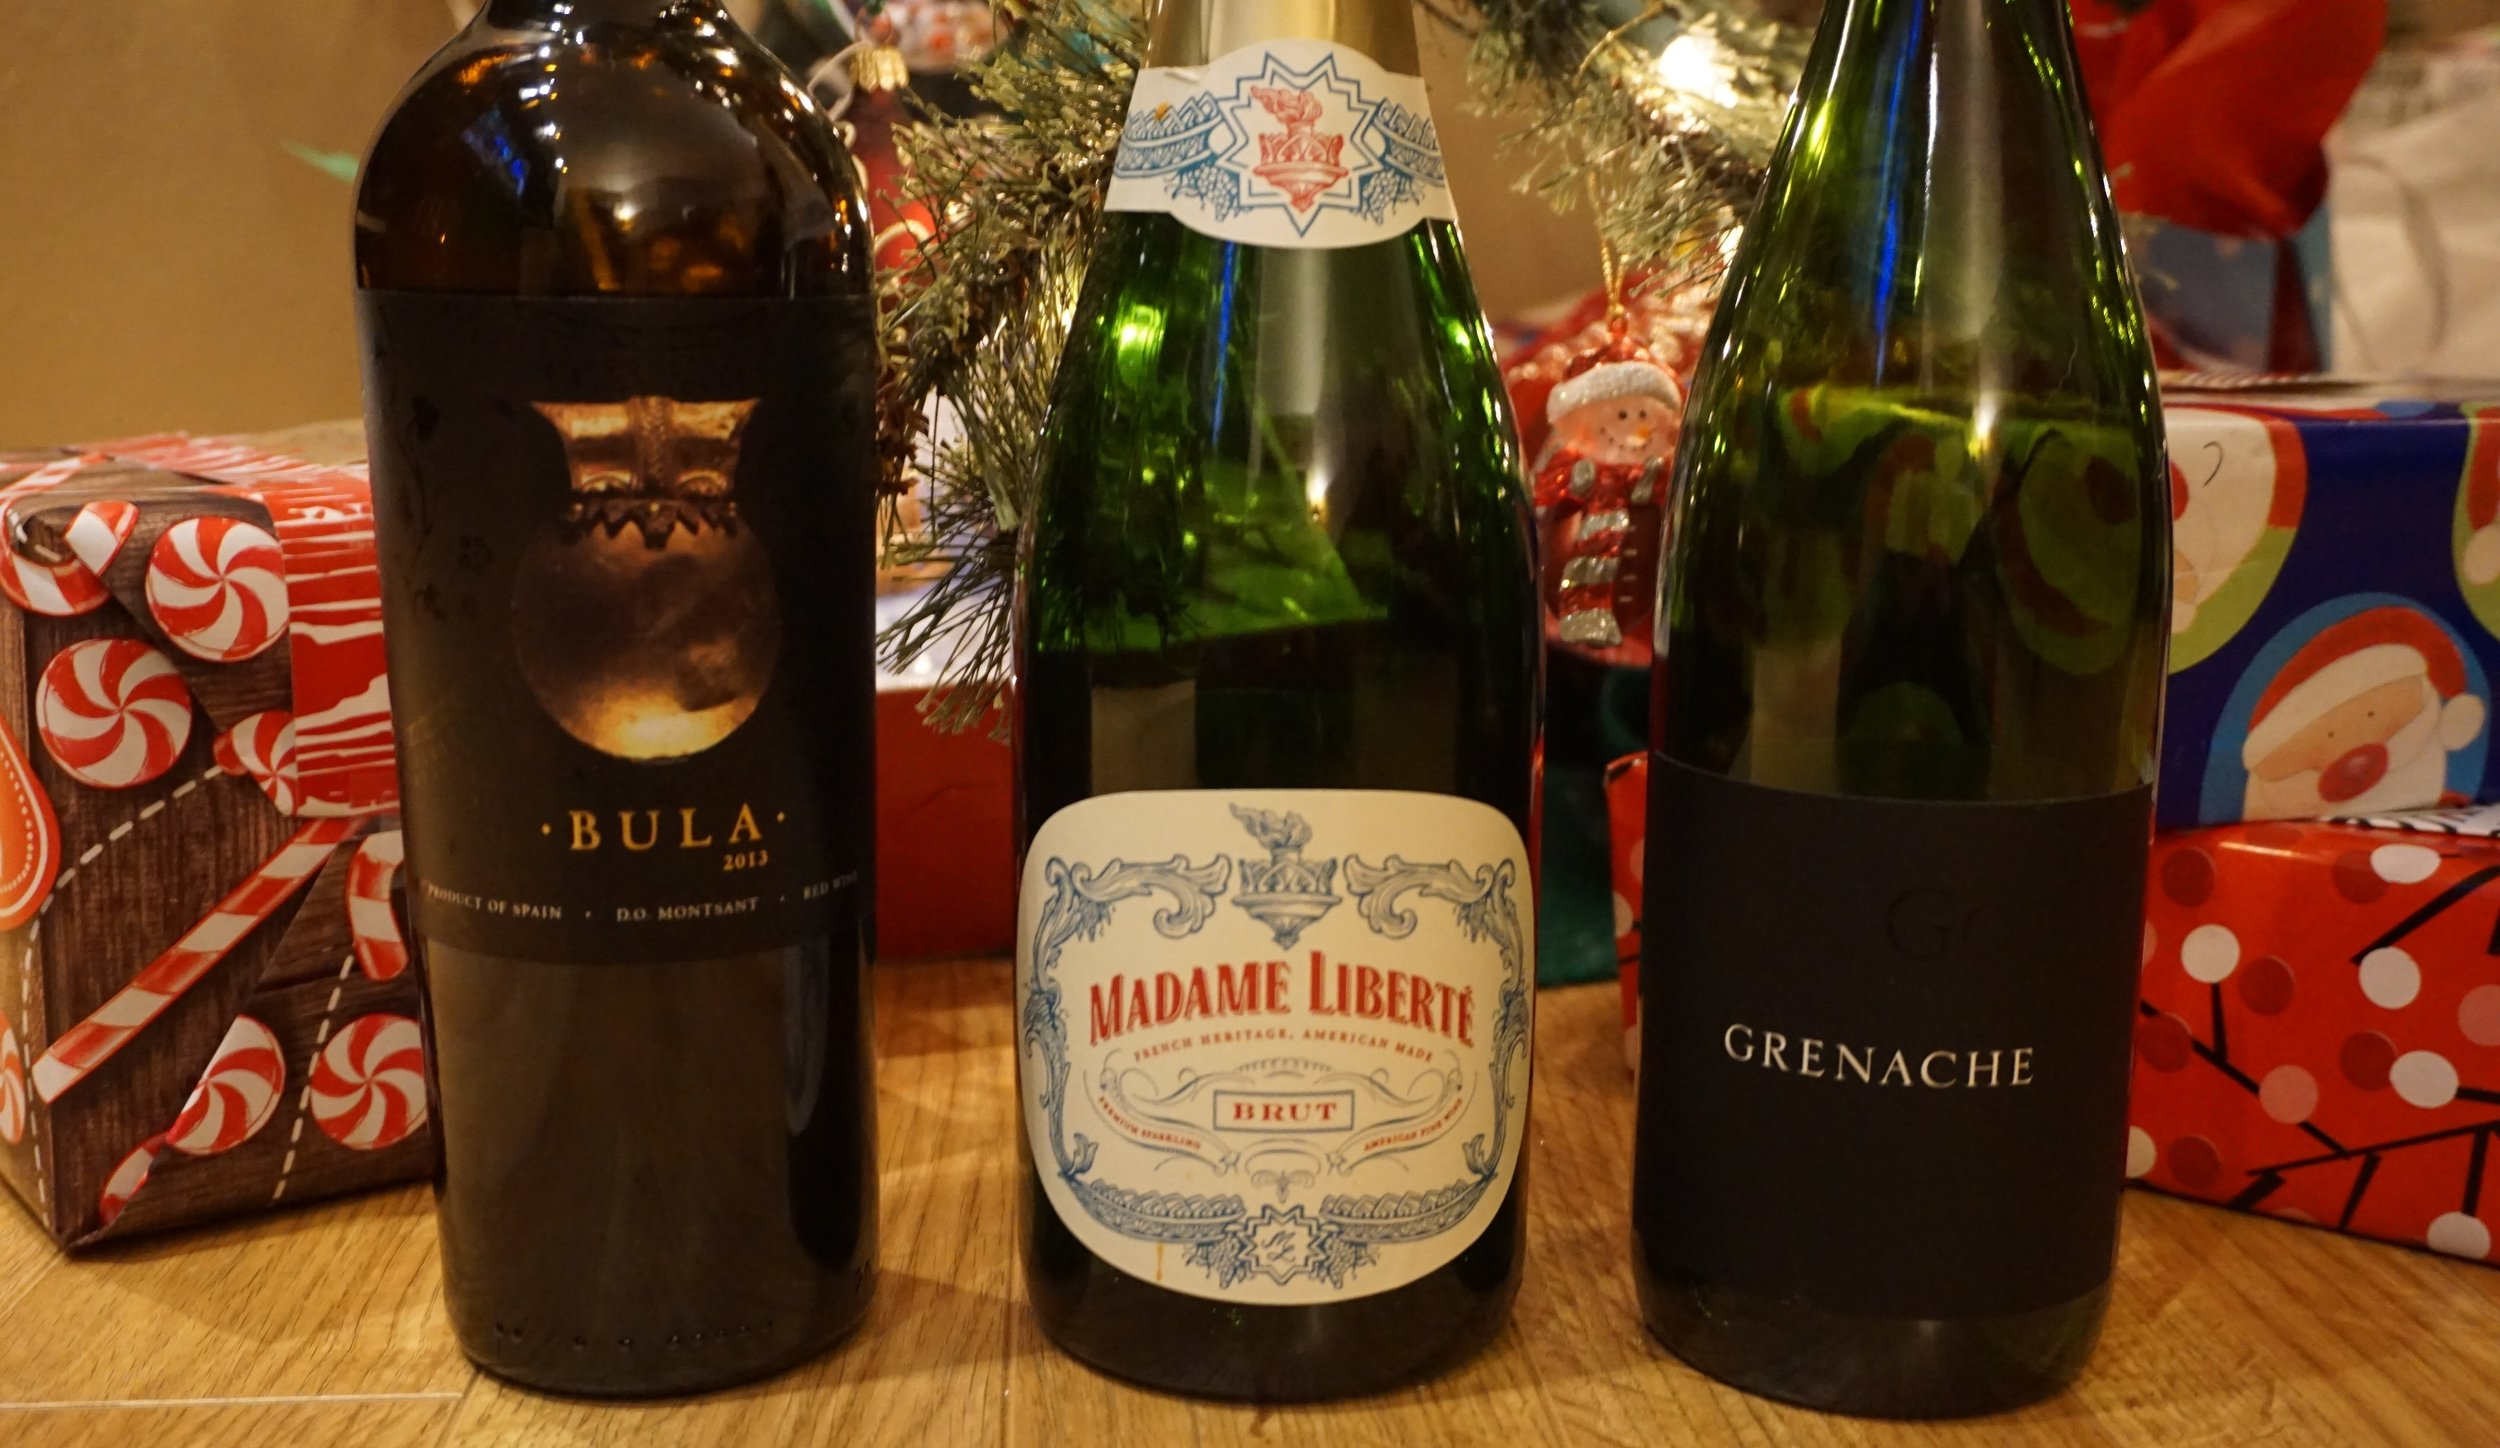 When compiling a shopping list, don't forget some standout wines to showcase those special-occasion Christmas and New Year's menus. Viki Eierdam